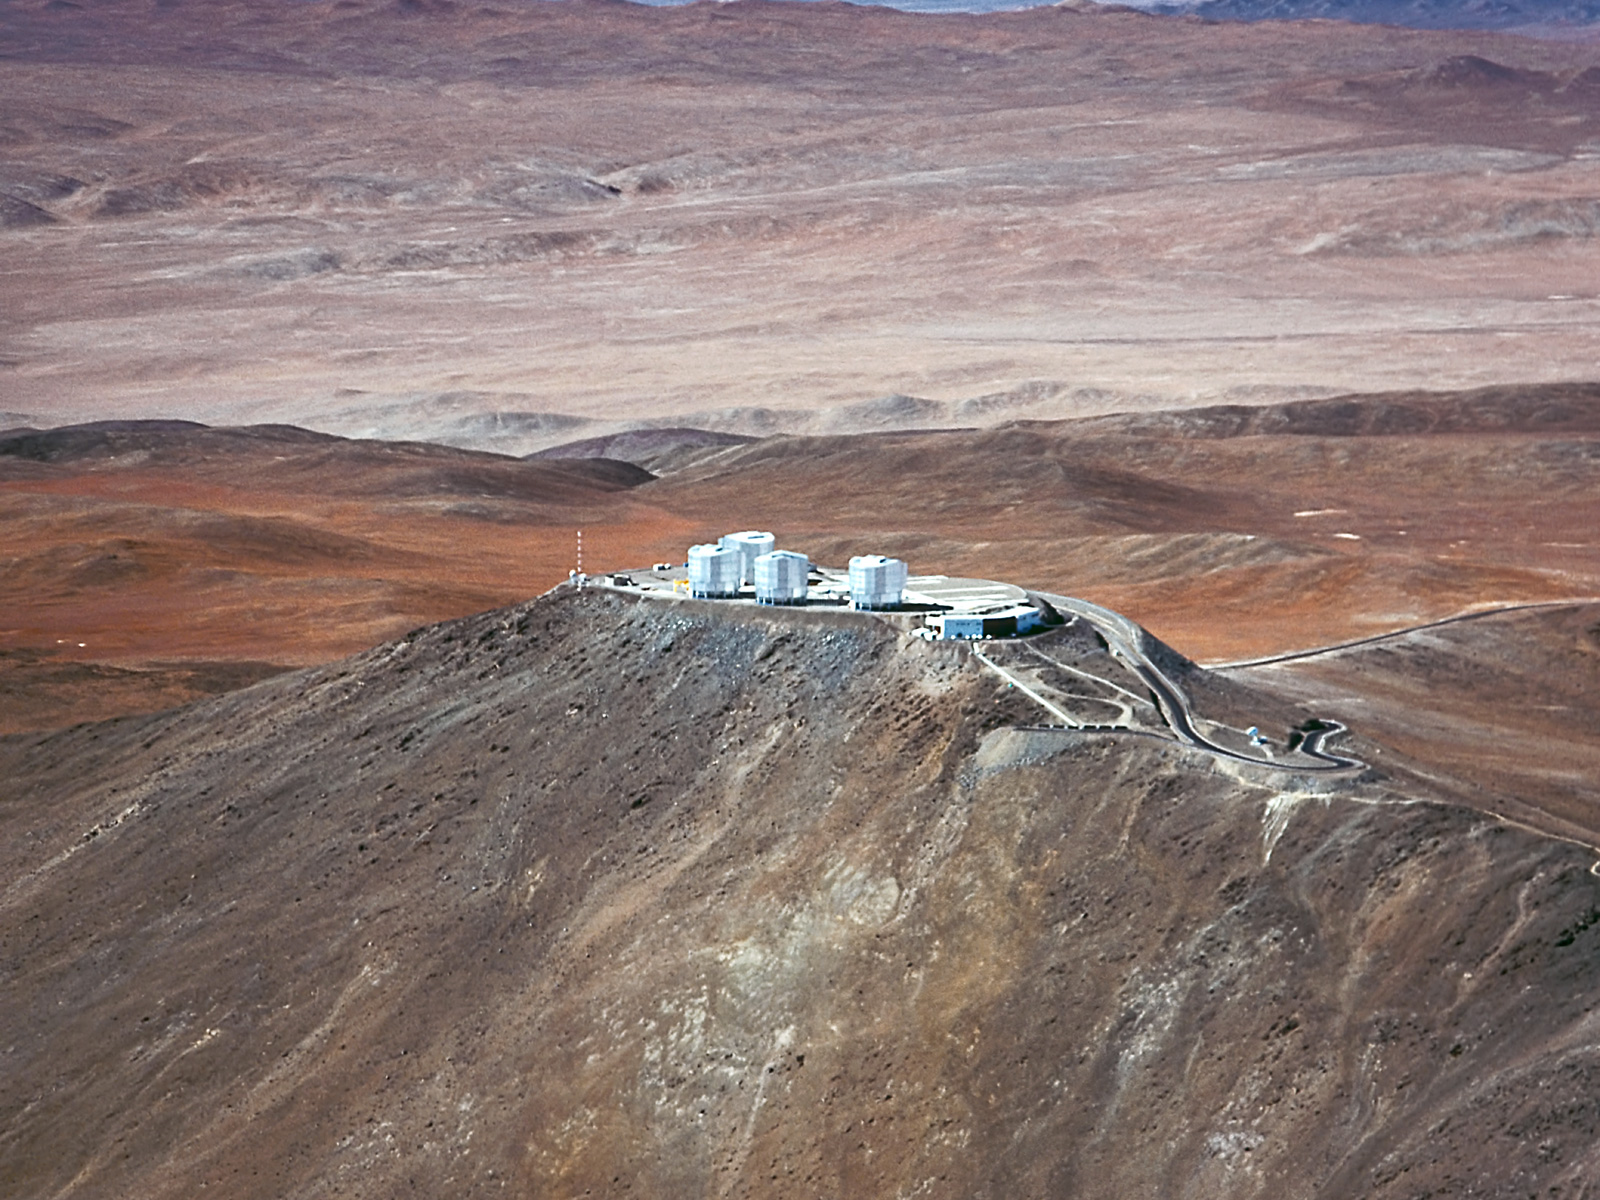 Paranal Observatory and the Volcano Llullaillaco